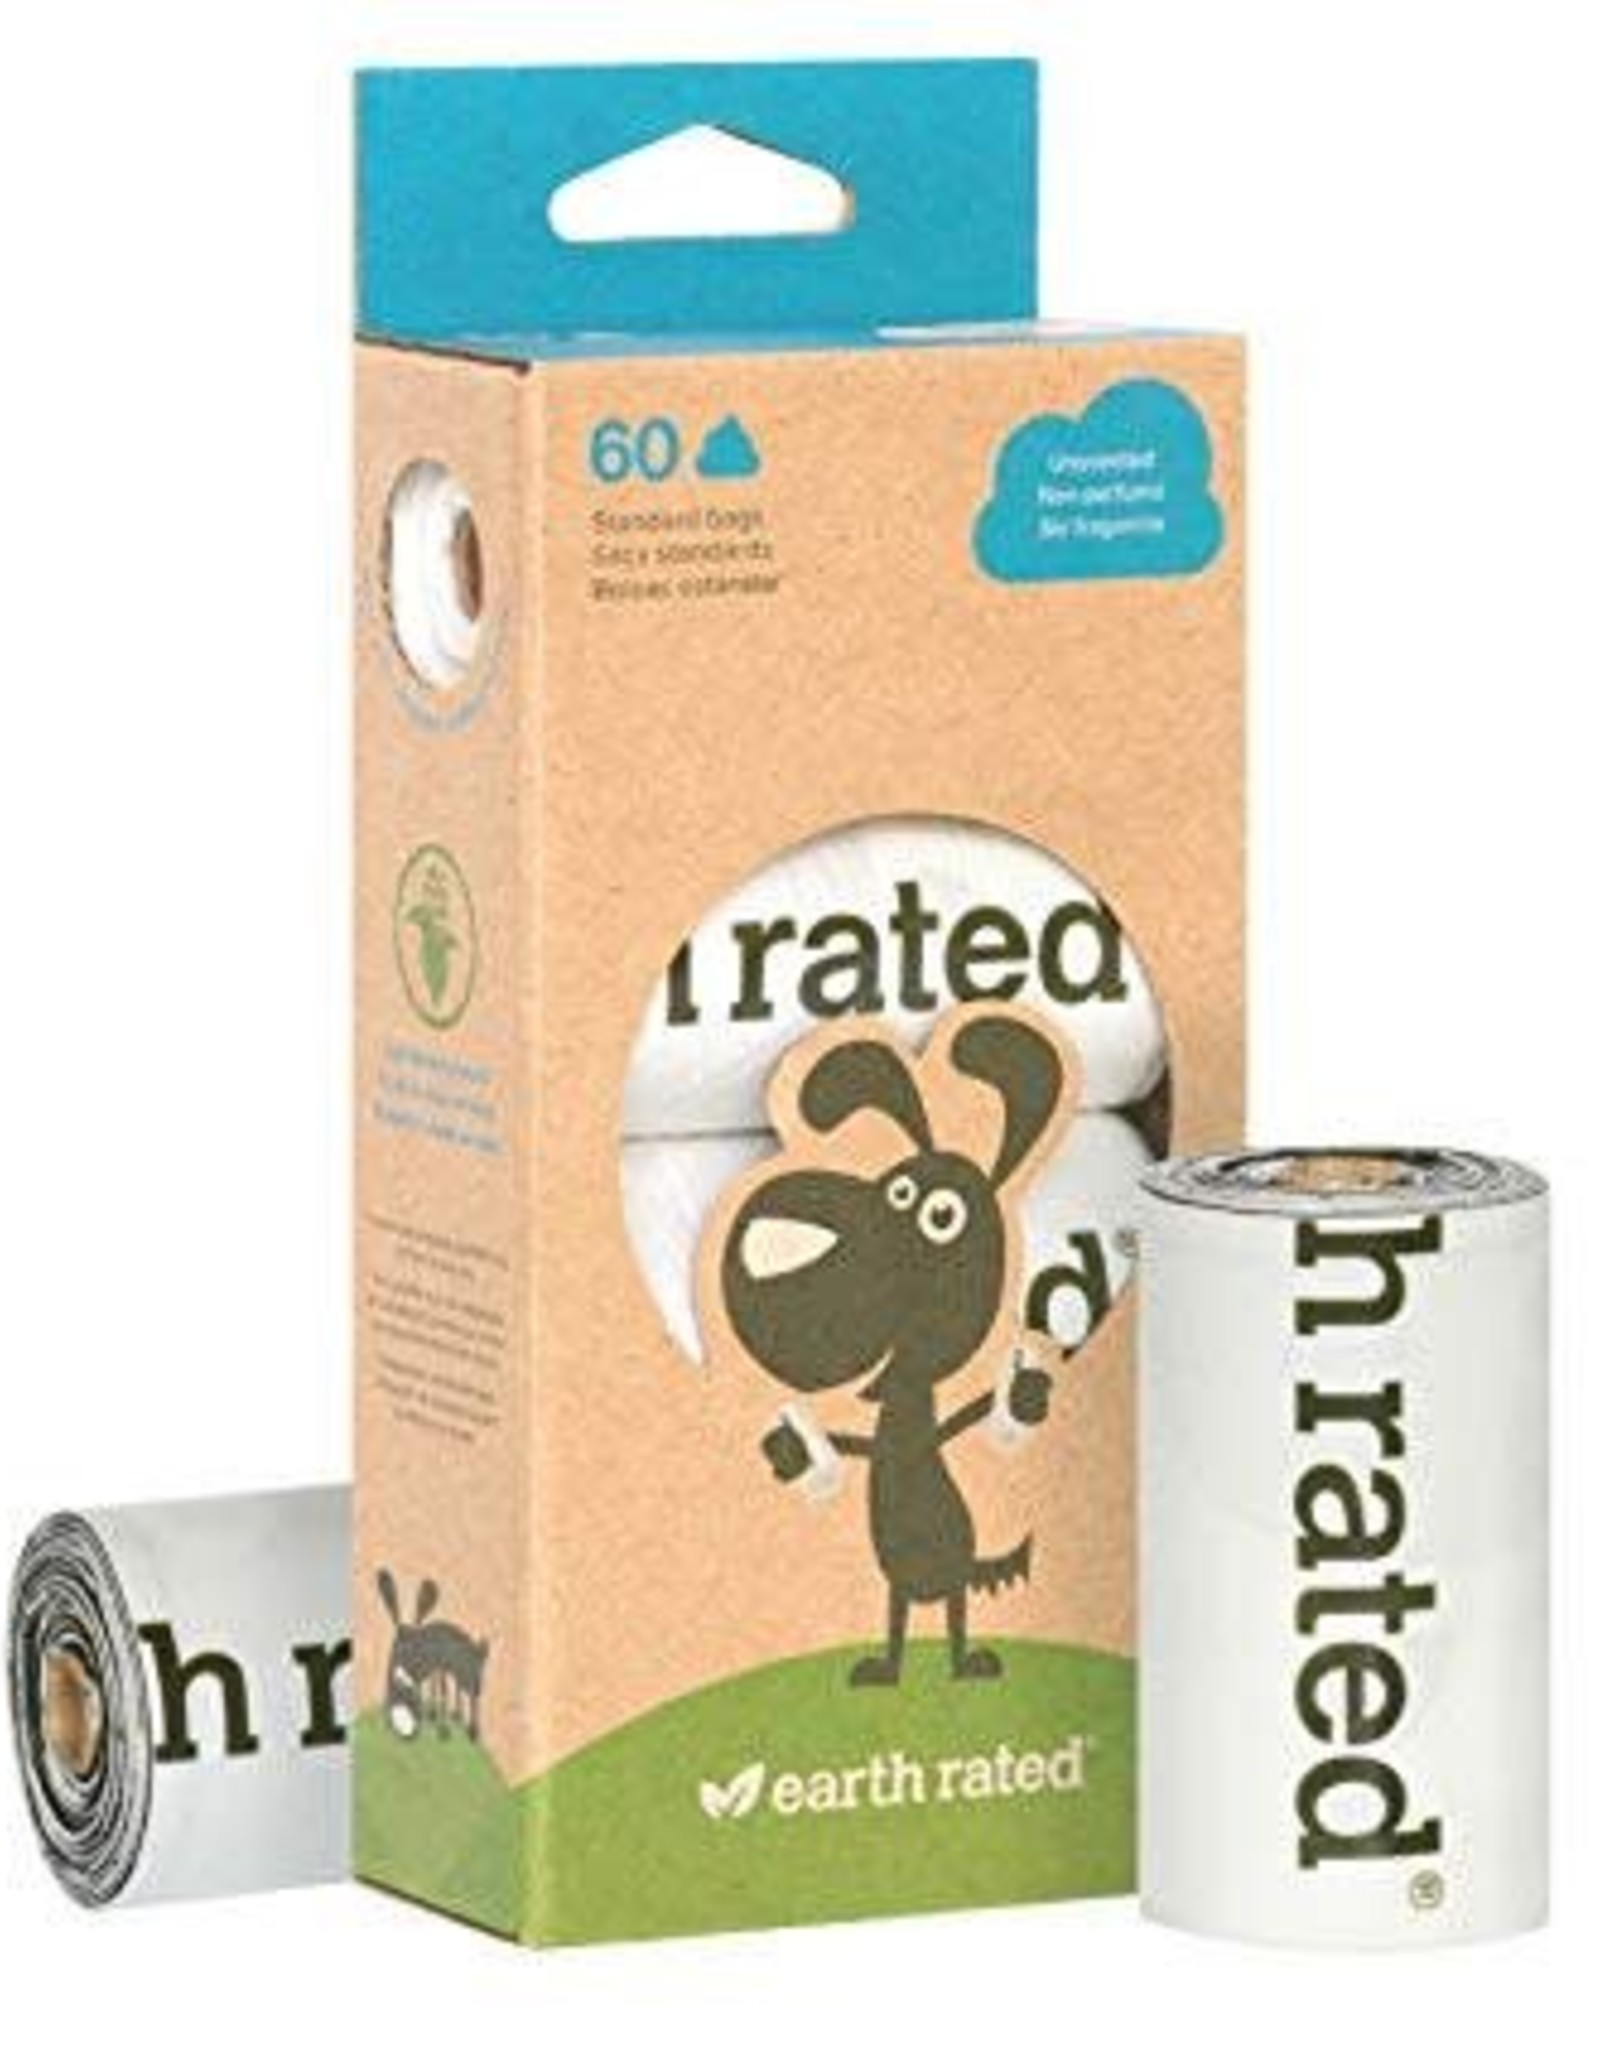 Earth Rated Earth Rated 60-Count, 4 rolls of Unscented Compostable Dog Waste Bags